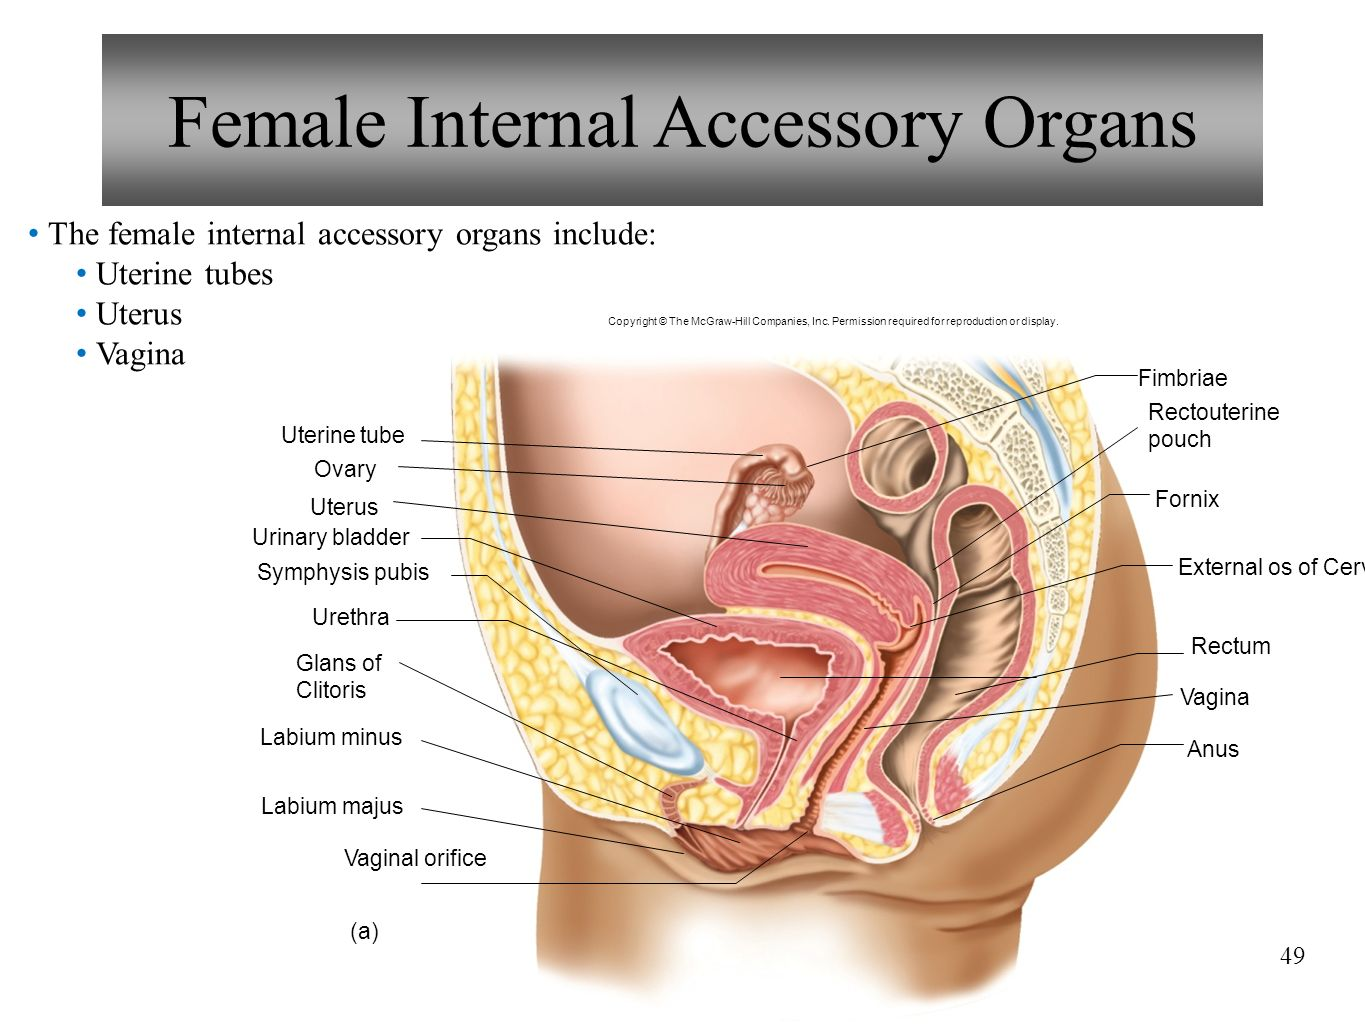 Lecture Powerpoint Reproductive Systems Anatomy And Phyiology Ppt